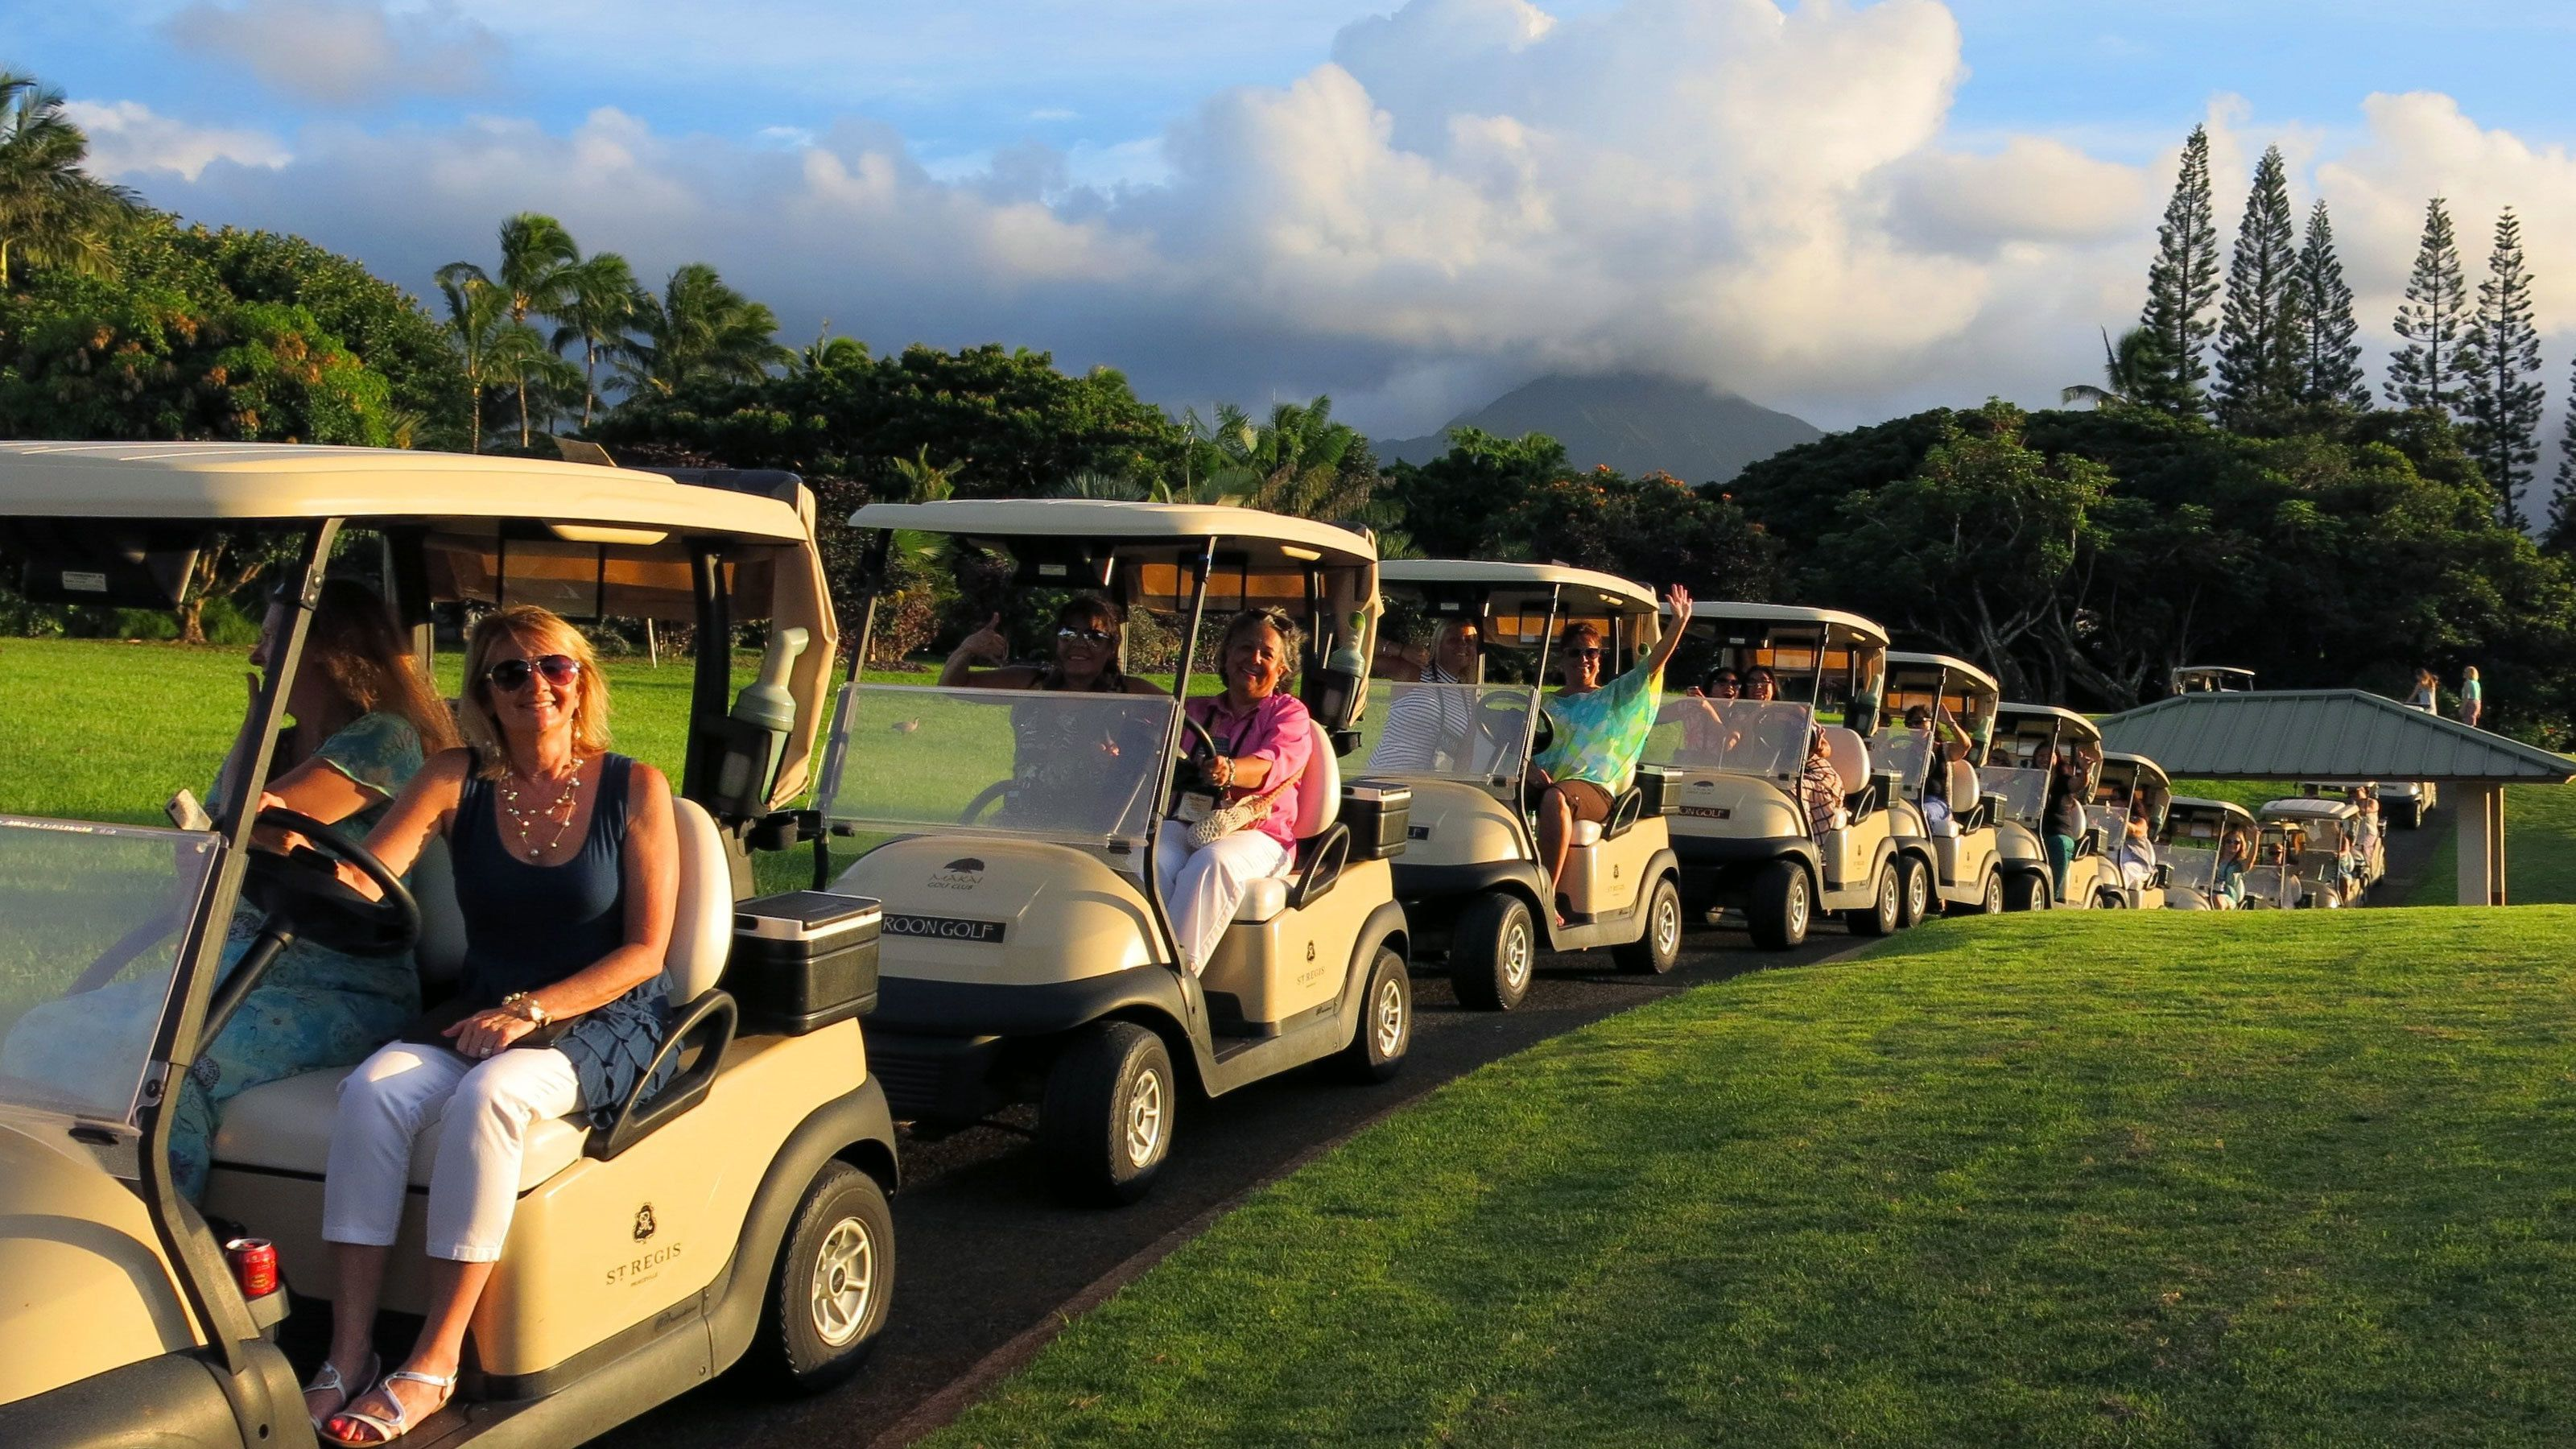 Row of tour group in golf carts on Kauai